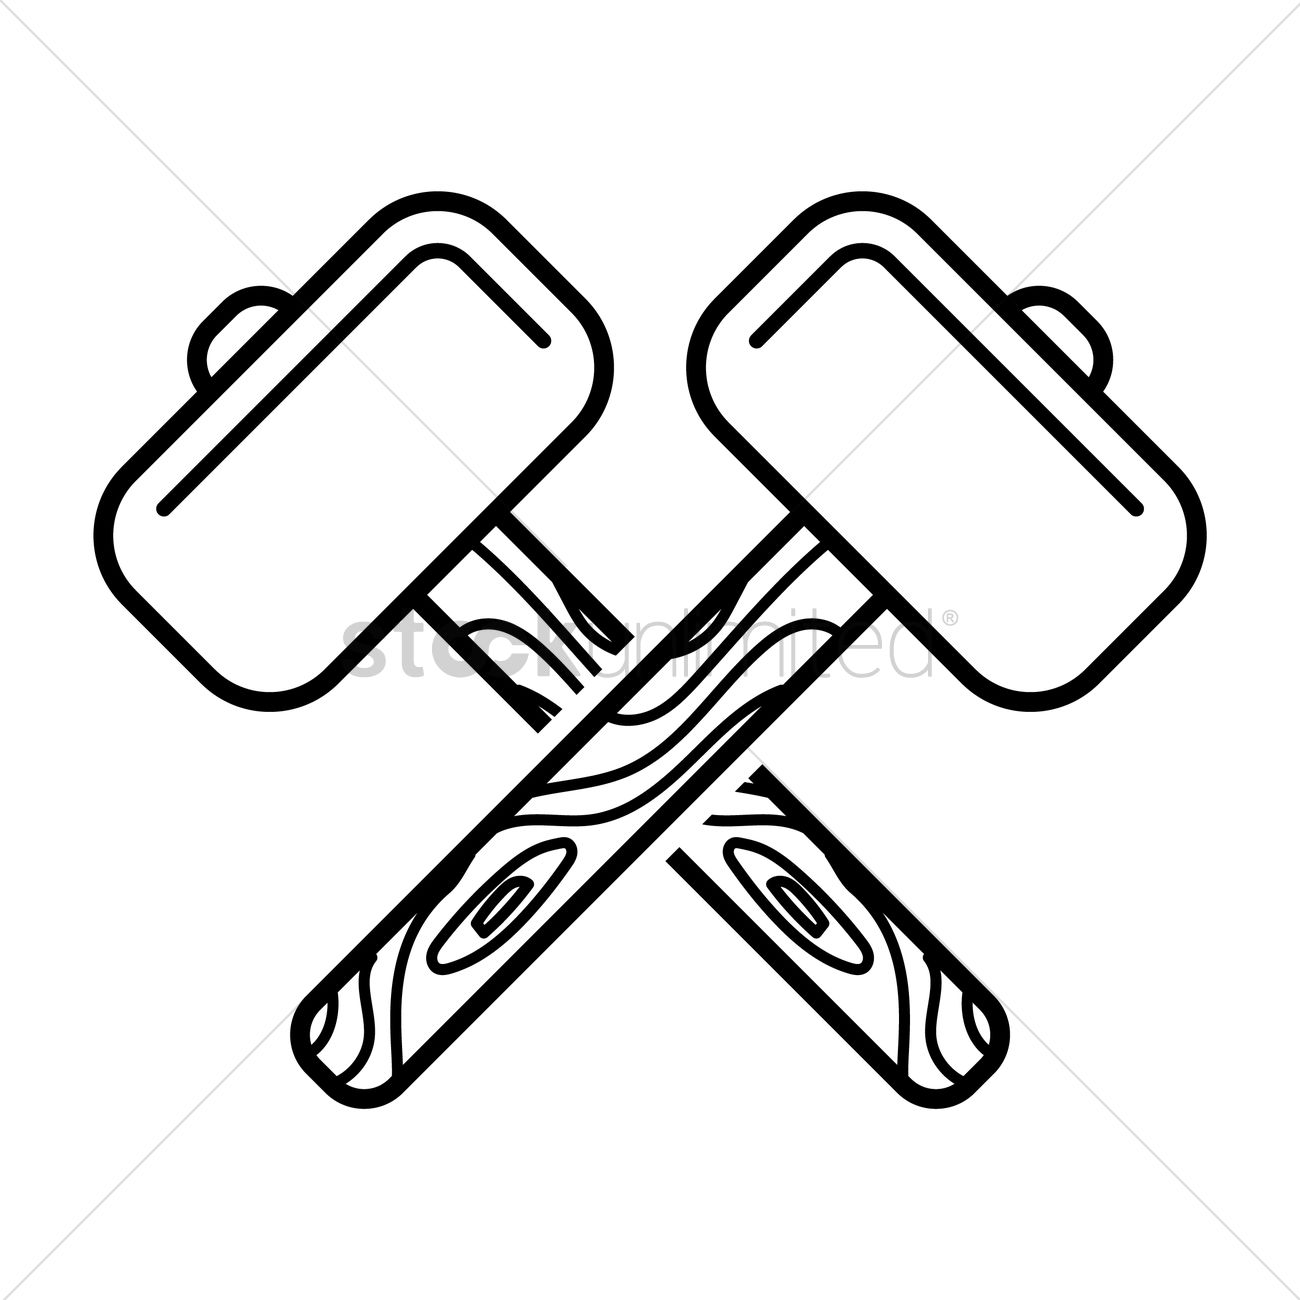 Crossed Hammers Vector Image 1524839 Stockunlimited